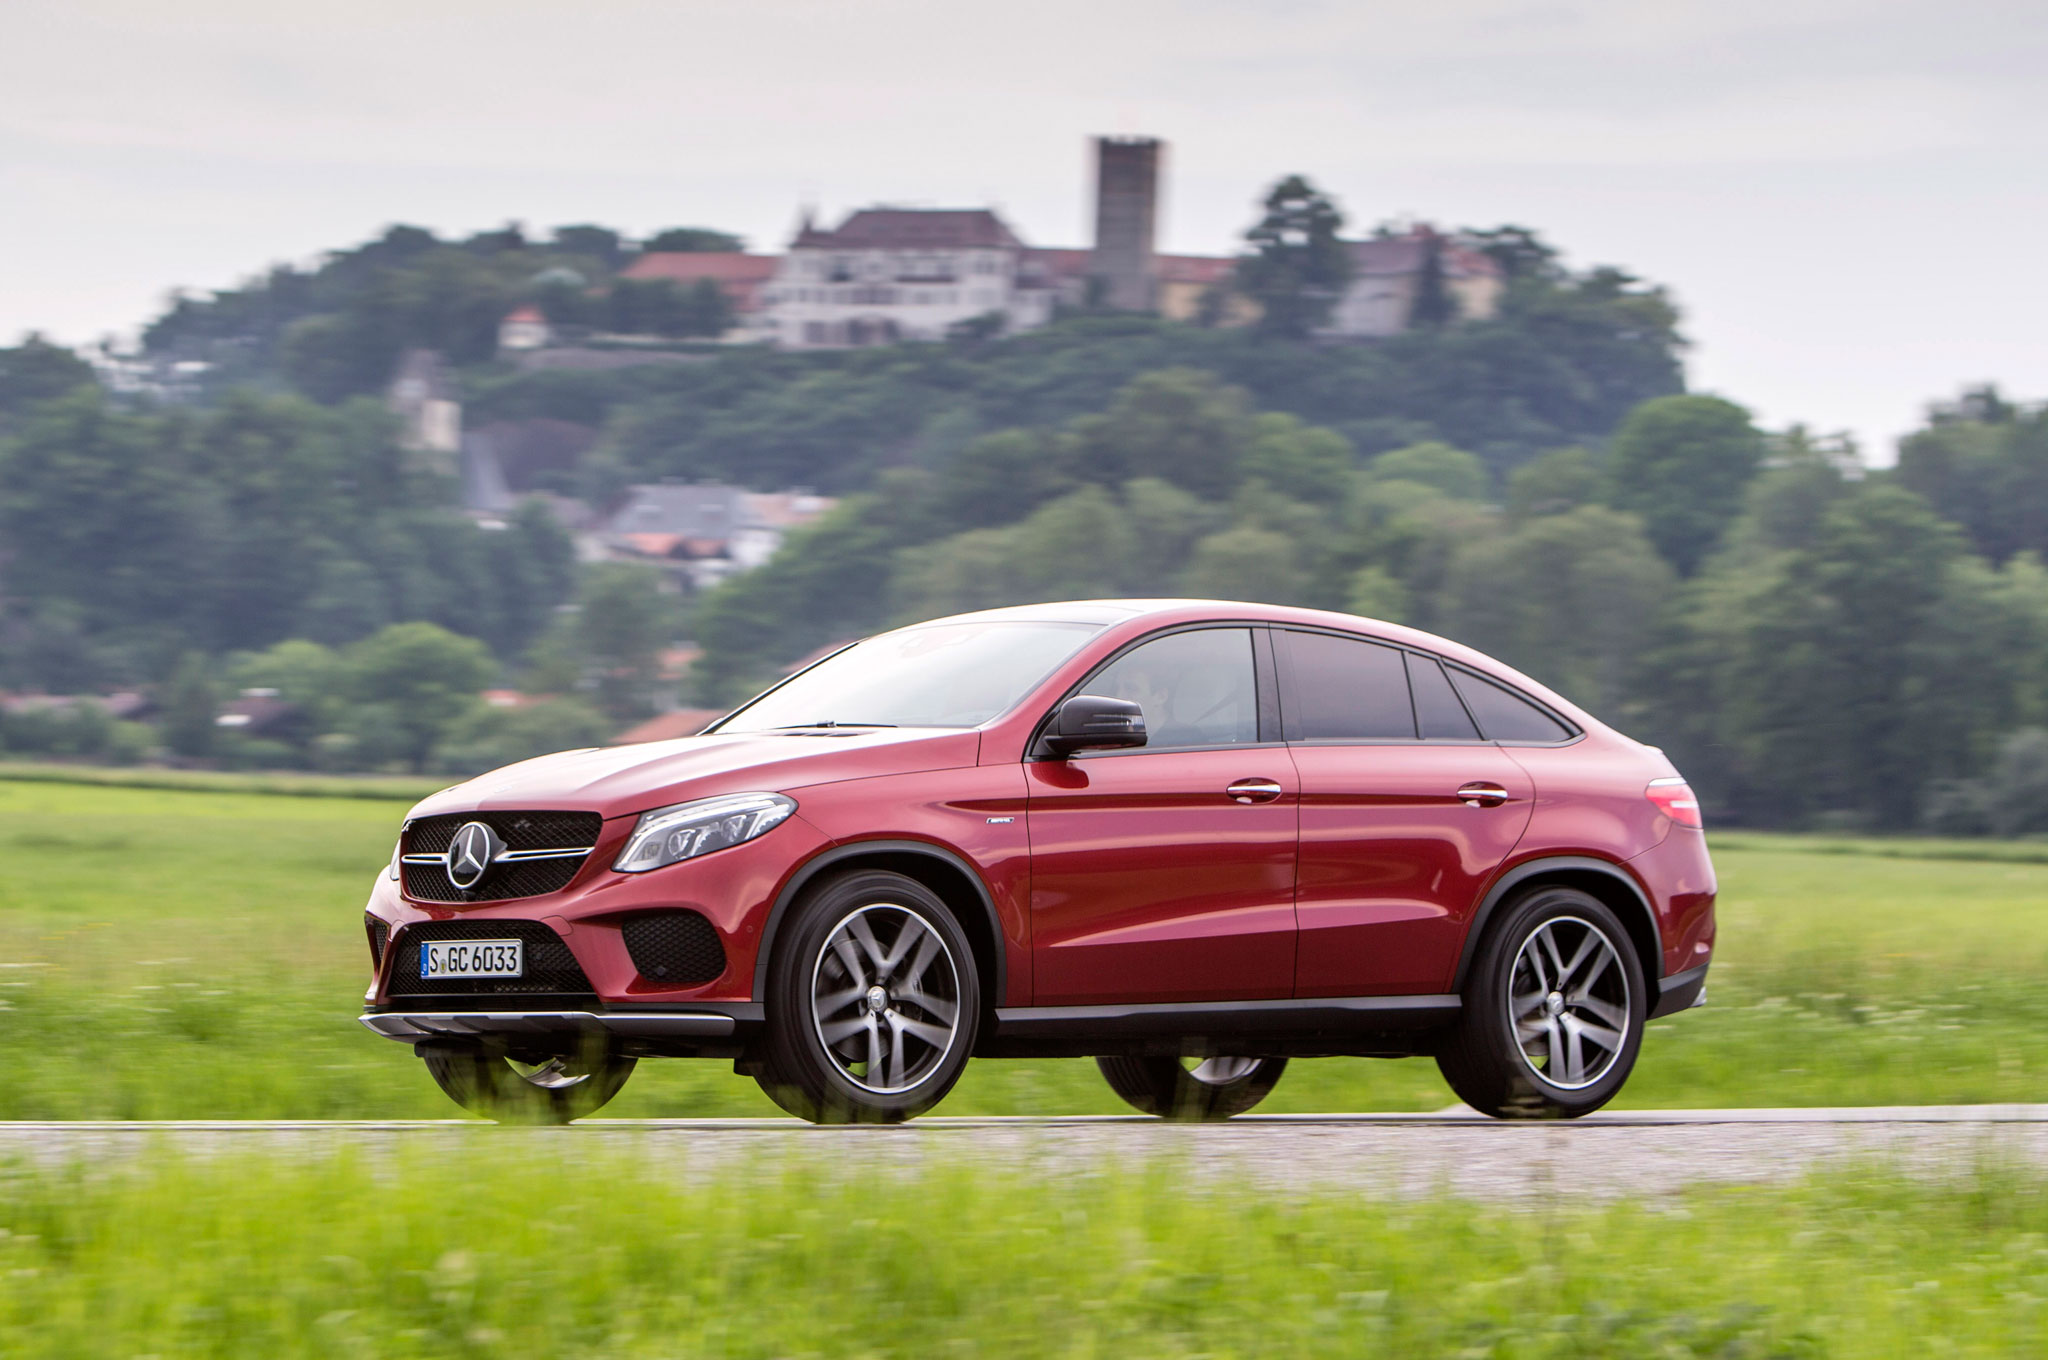 https://enthusiastnetwork.s3.amazonaws.com/uploads/sites/5/2015/06/2016-Mercedes-Benz-GLE450-AMG-4Matic-Coupe-front-three-quarter-in-motion-06.jpg?impolicy=entryimage